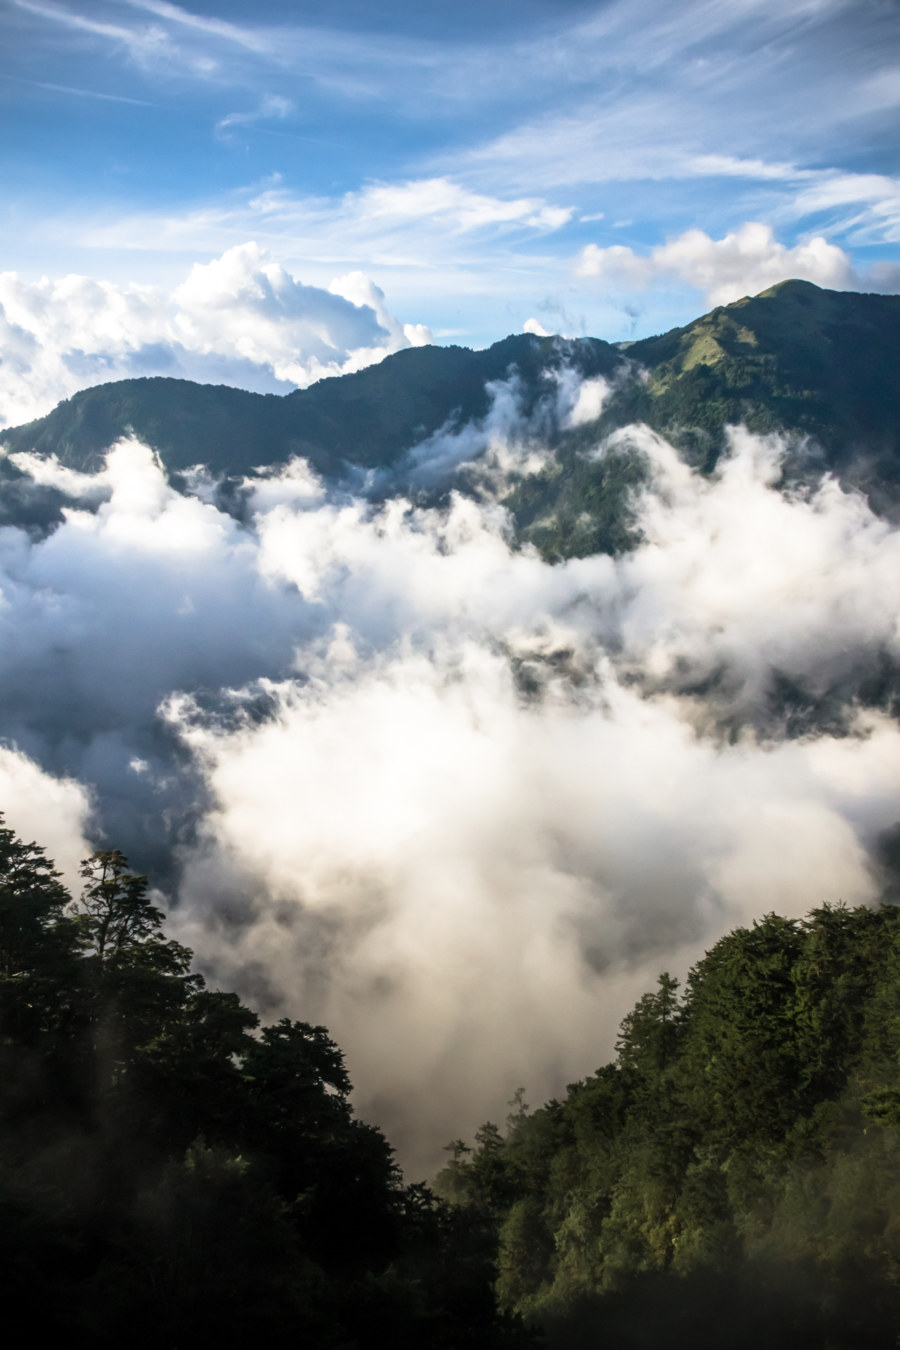 High above the clouds in the central mountain range of Taiwan